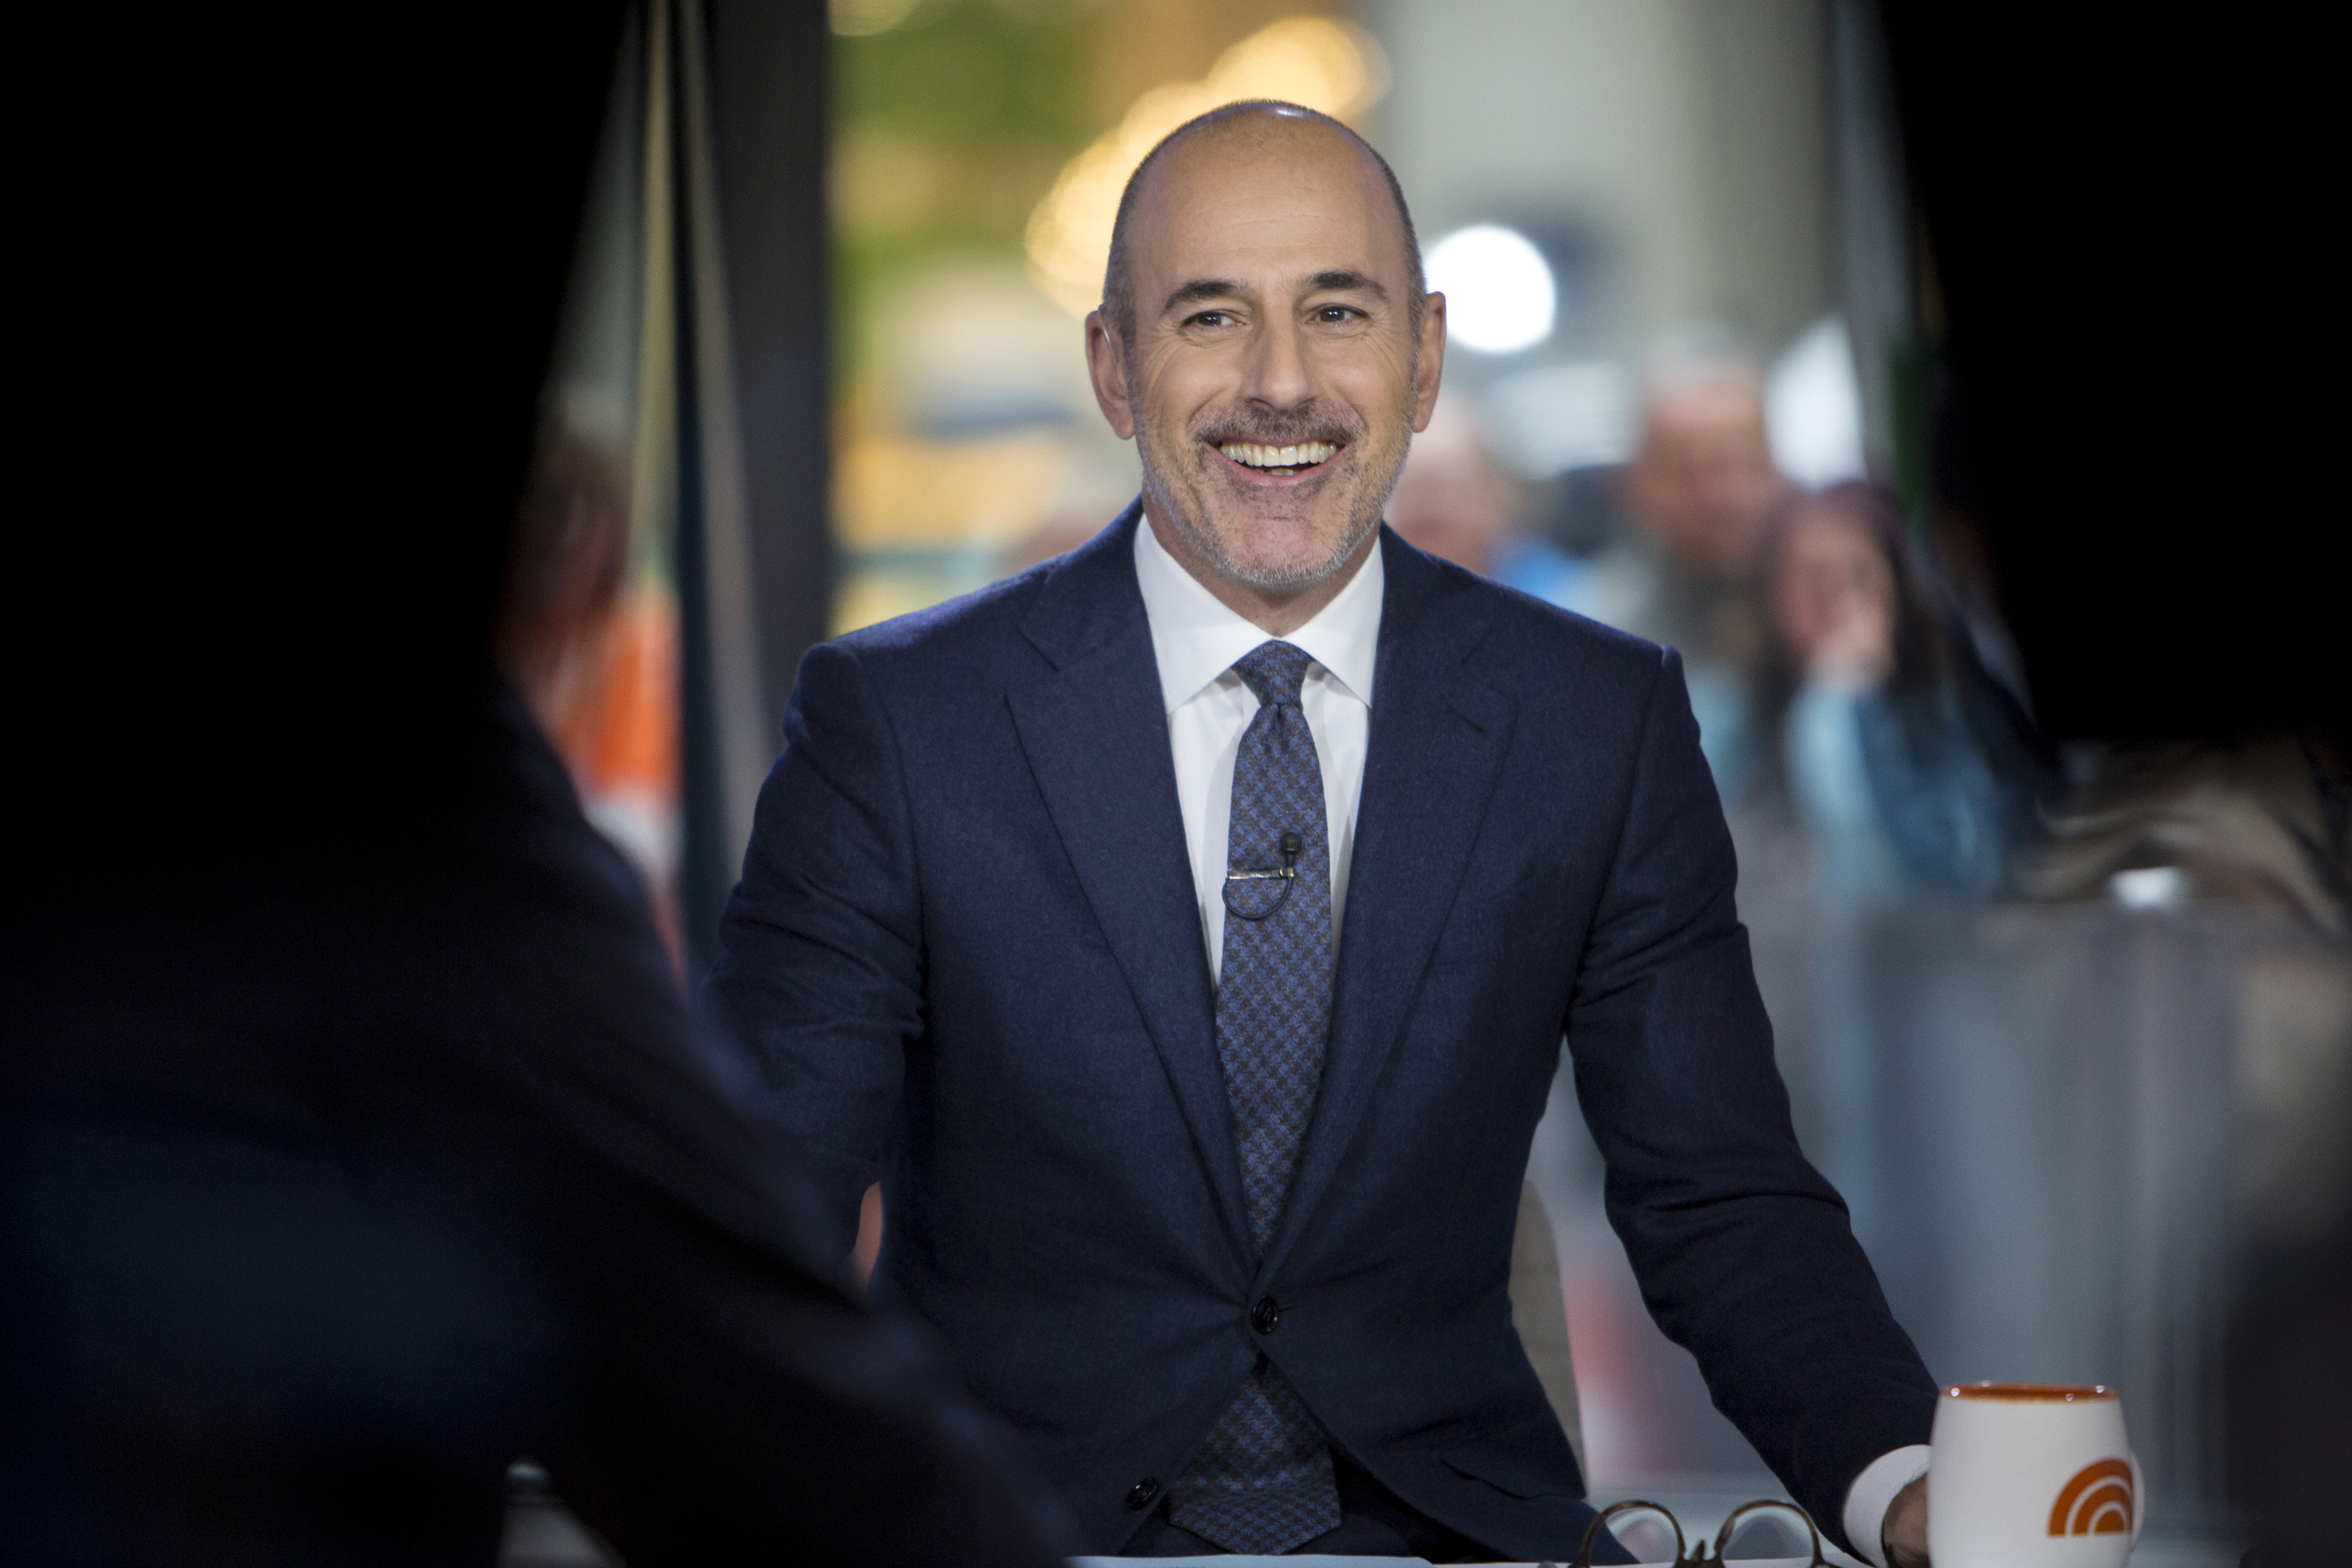 Matt Lauer on set of the Today Show on Nov.16, 2017.